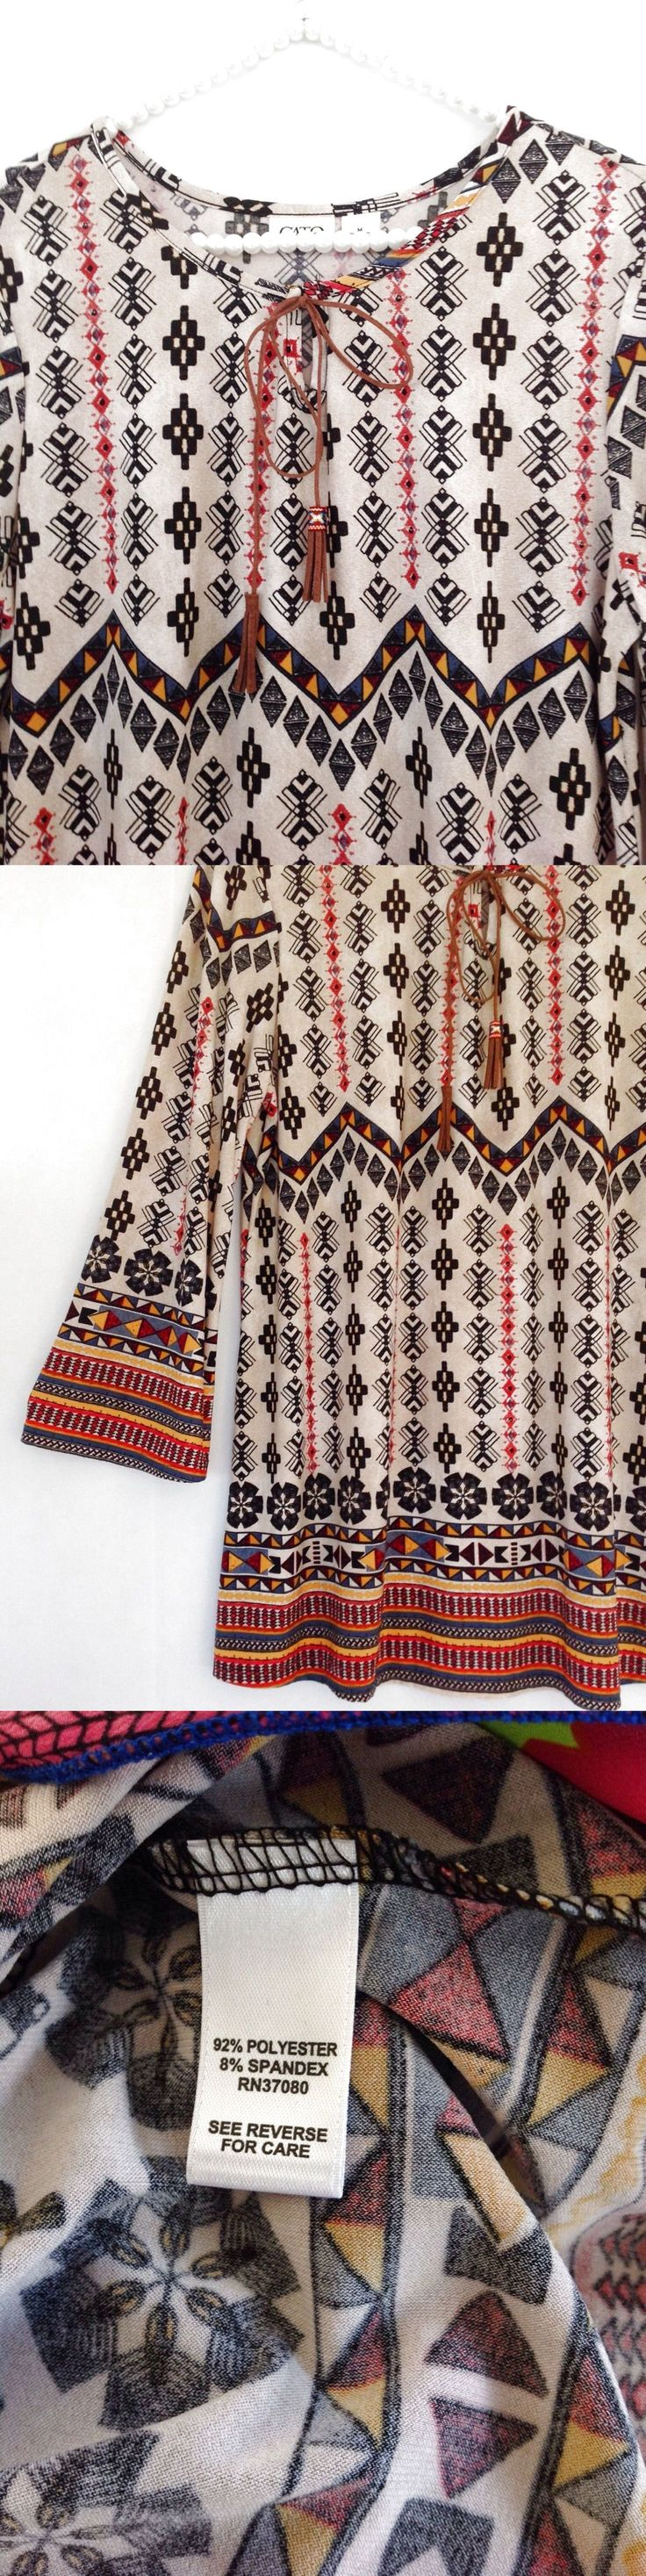 Cato Aztec Printed Bell Sleeve Suede Tassel Tunic Top Blouse Shirt Sz M Women's $11.99